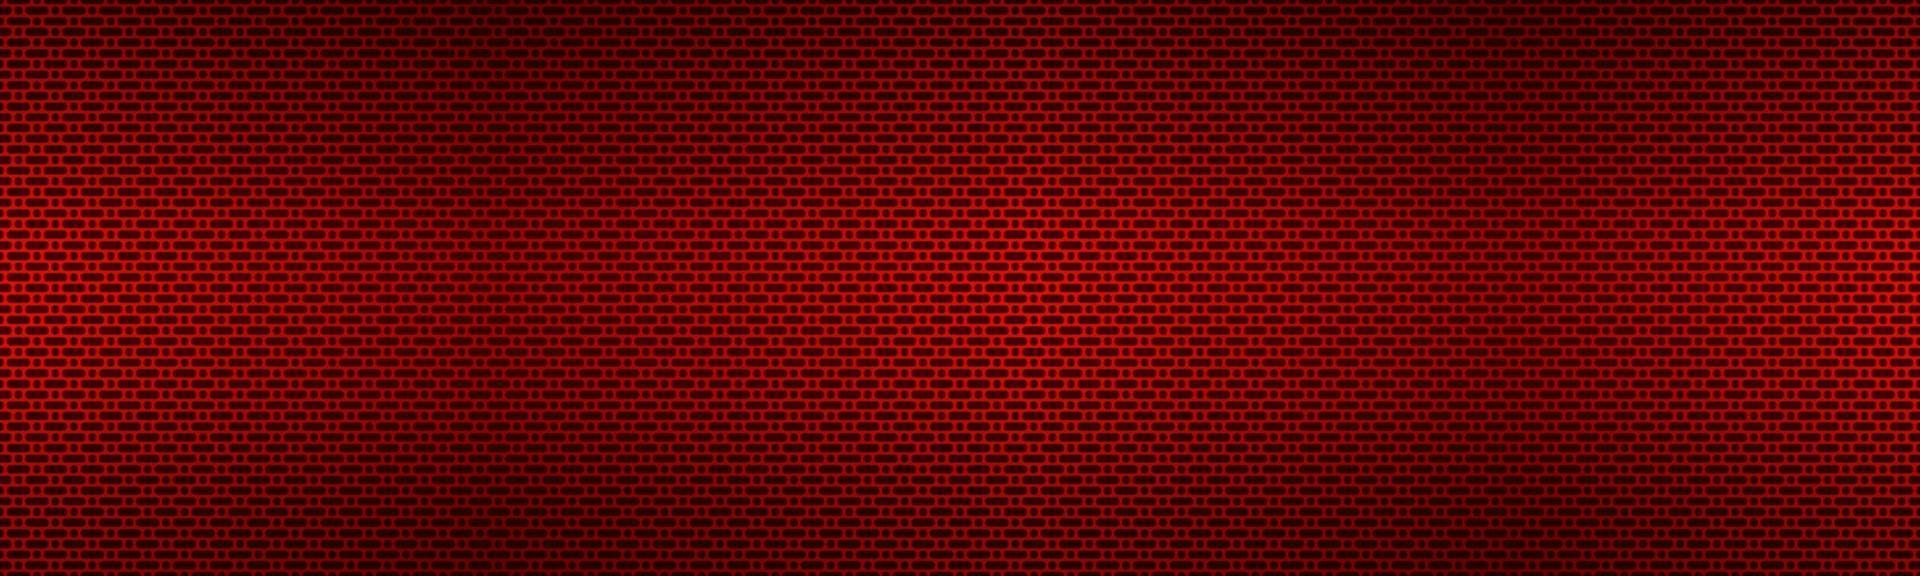 Perforated red metallic header. Metal texture banner. Simple texnology illustration. Circle, rounded rectangle and oval perforated vector